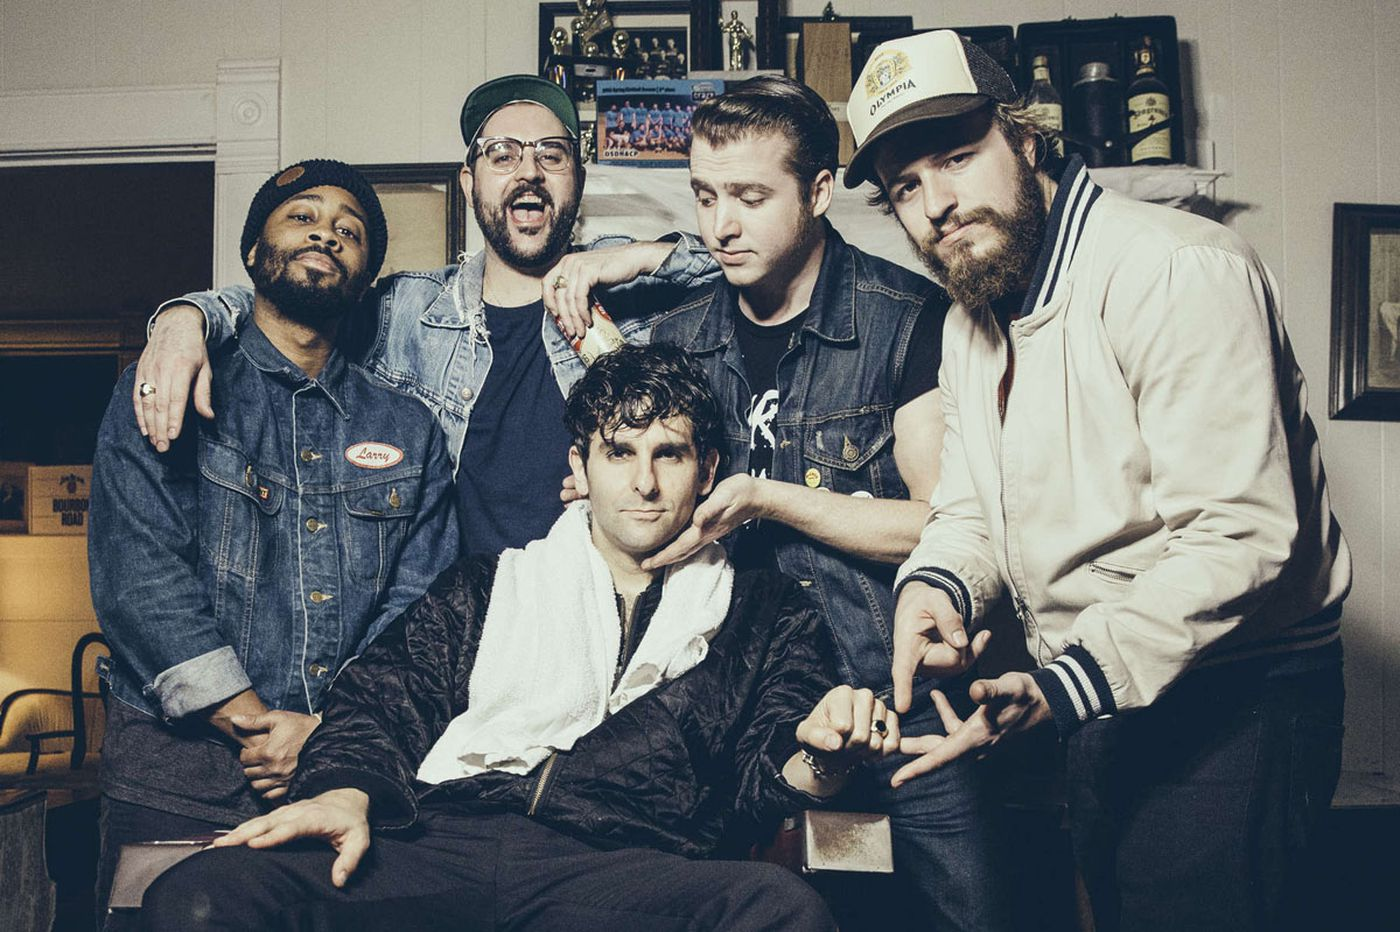 With presidential seal of approval, Low Cut Connie rocks District N9NE